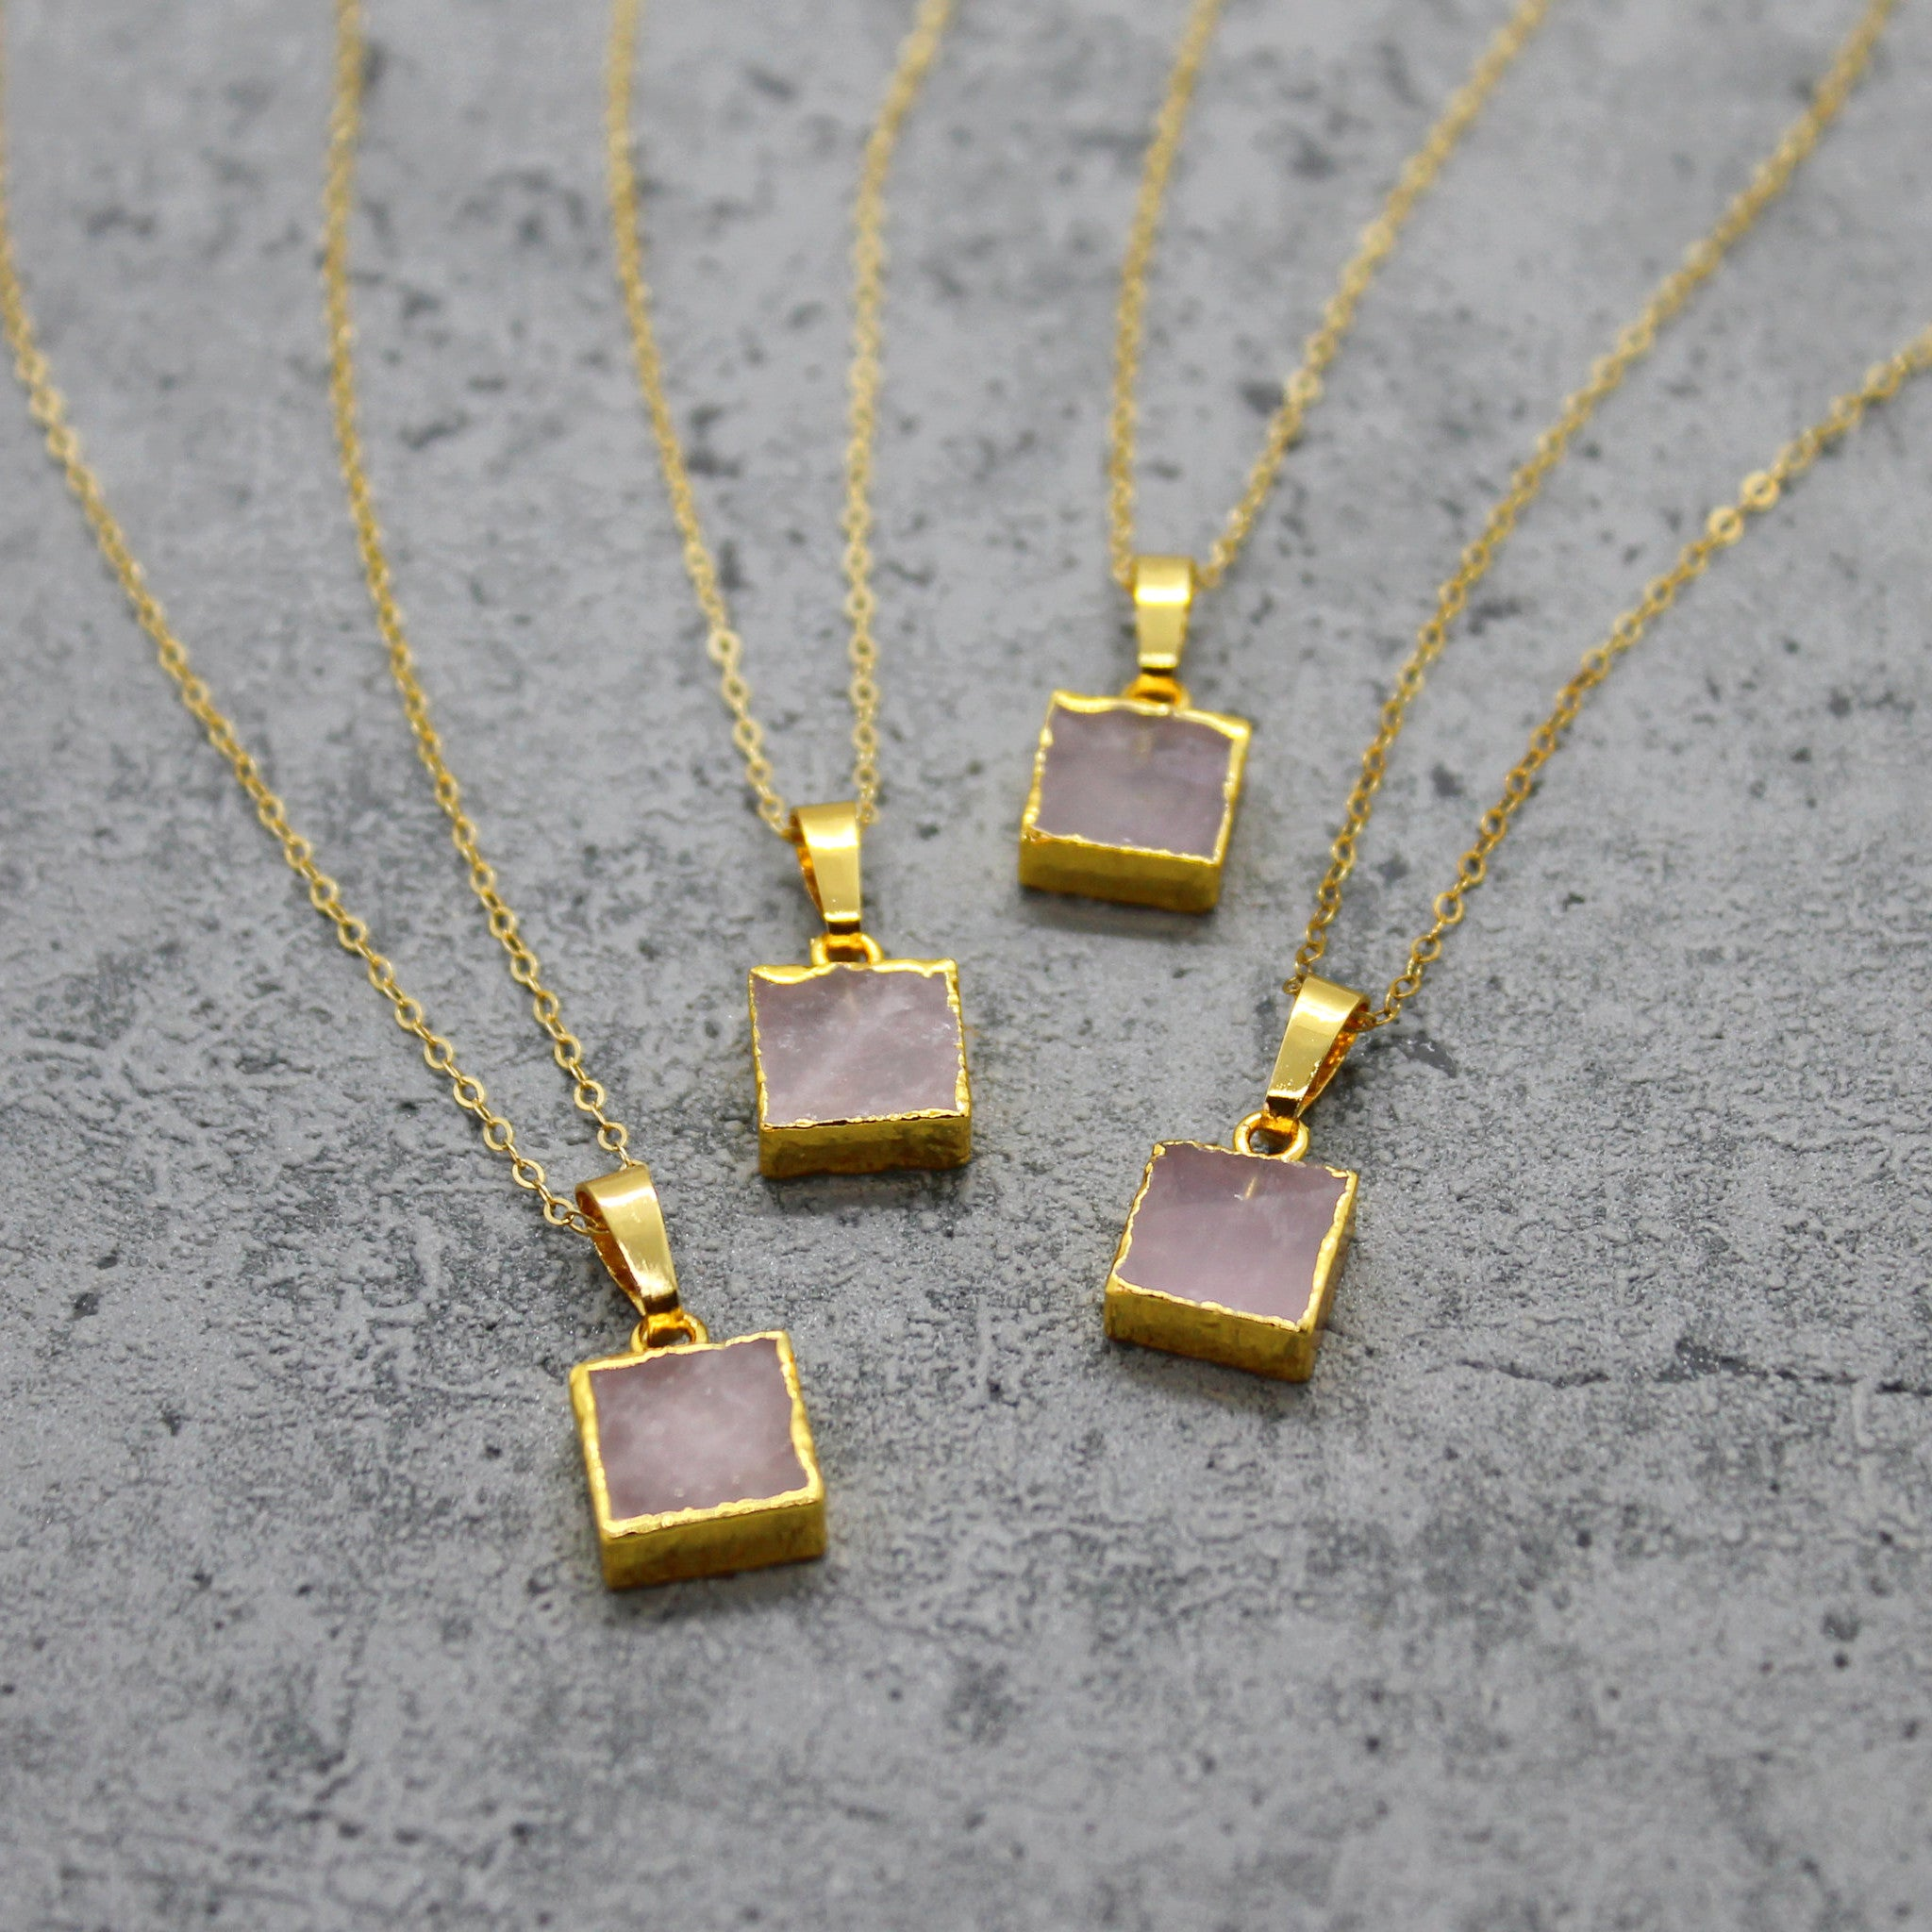 Rose quartz cube necklace - Mara studio